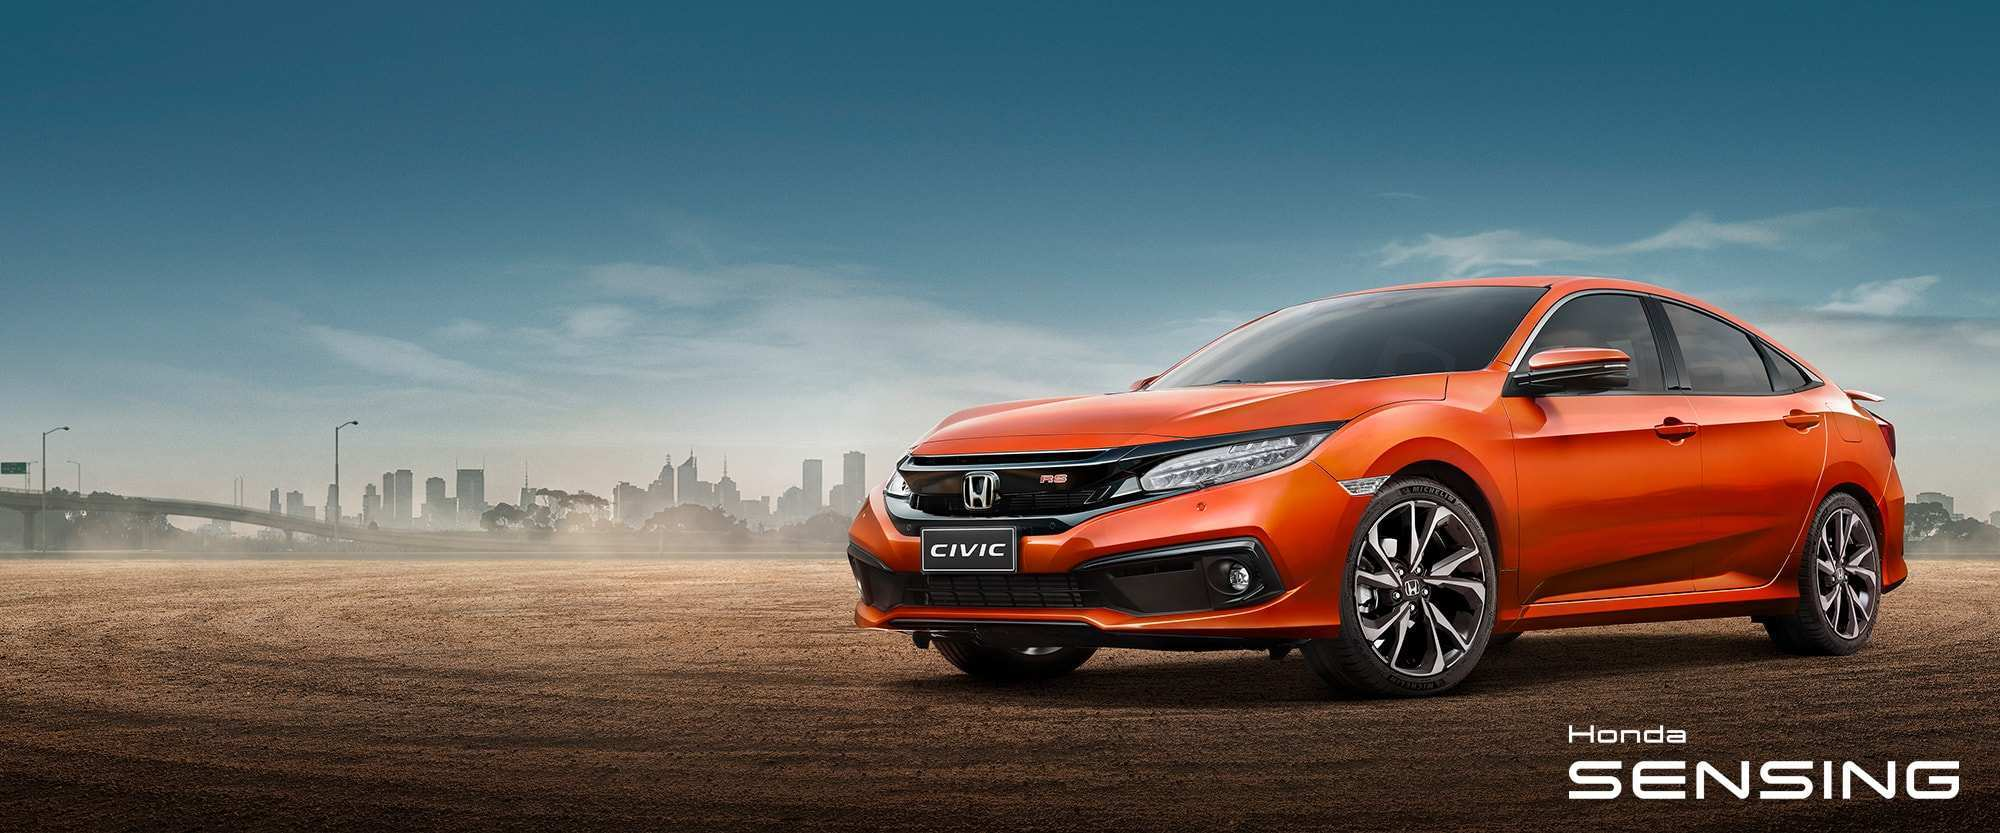 21 Concept of New Mobil Honda 2019 First Drive Pricing for New Mobil Honda 2019 First Drive